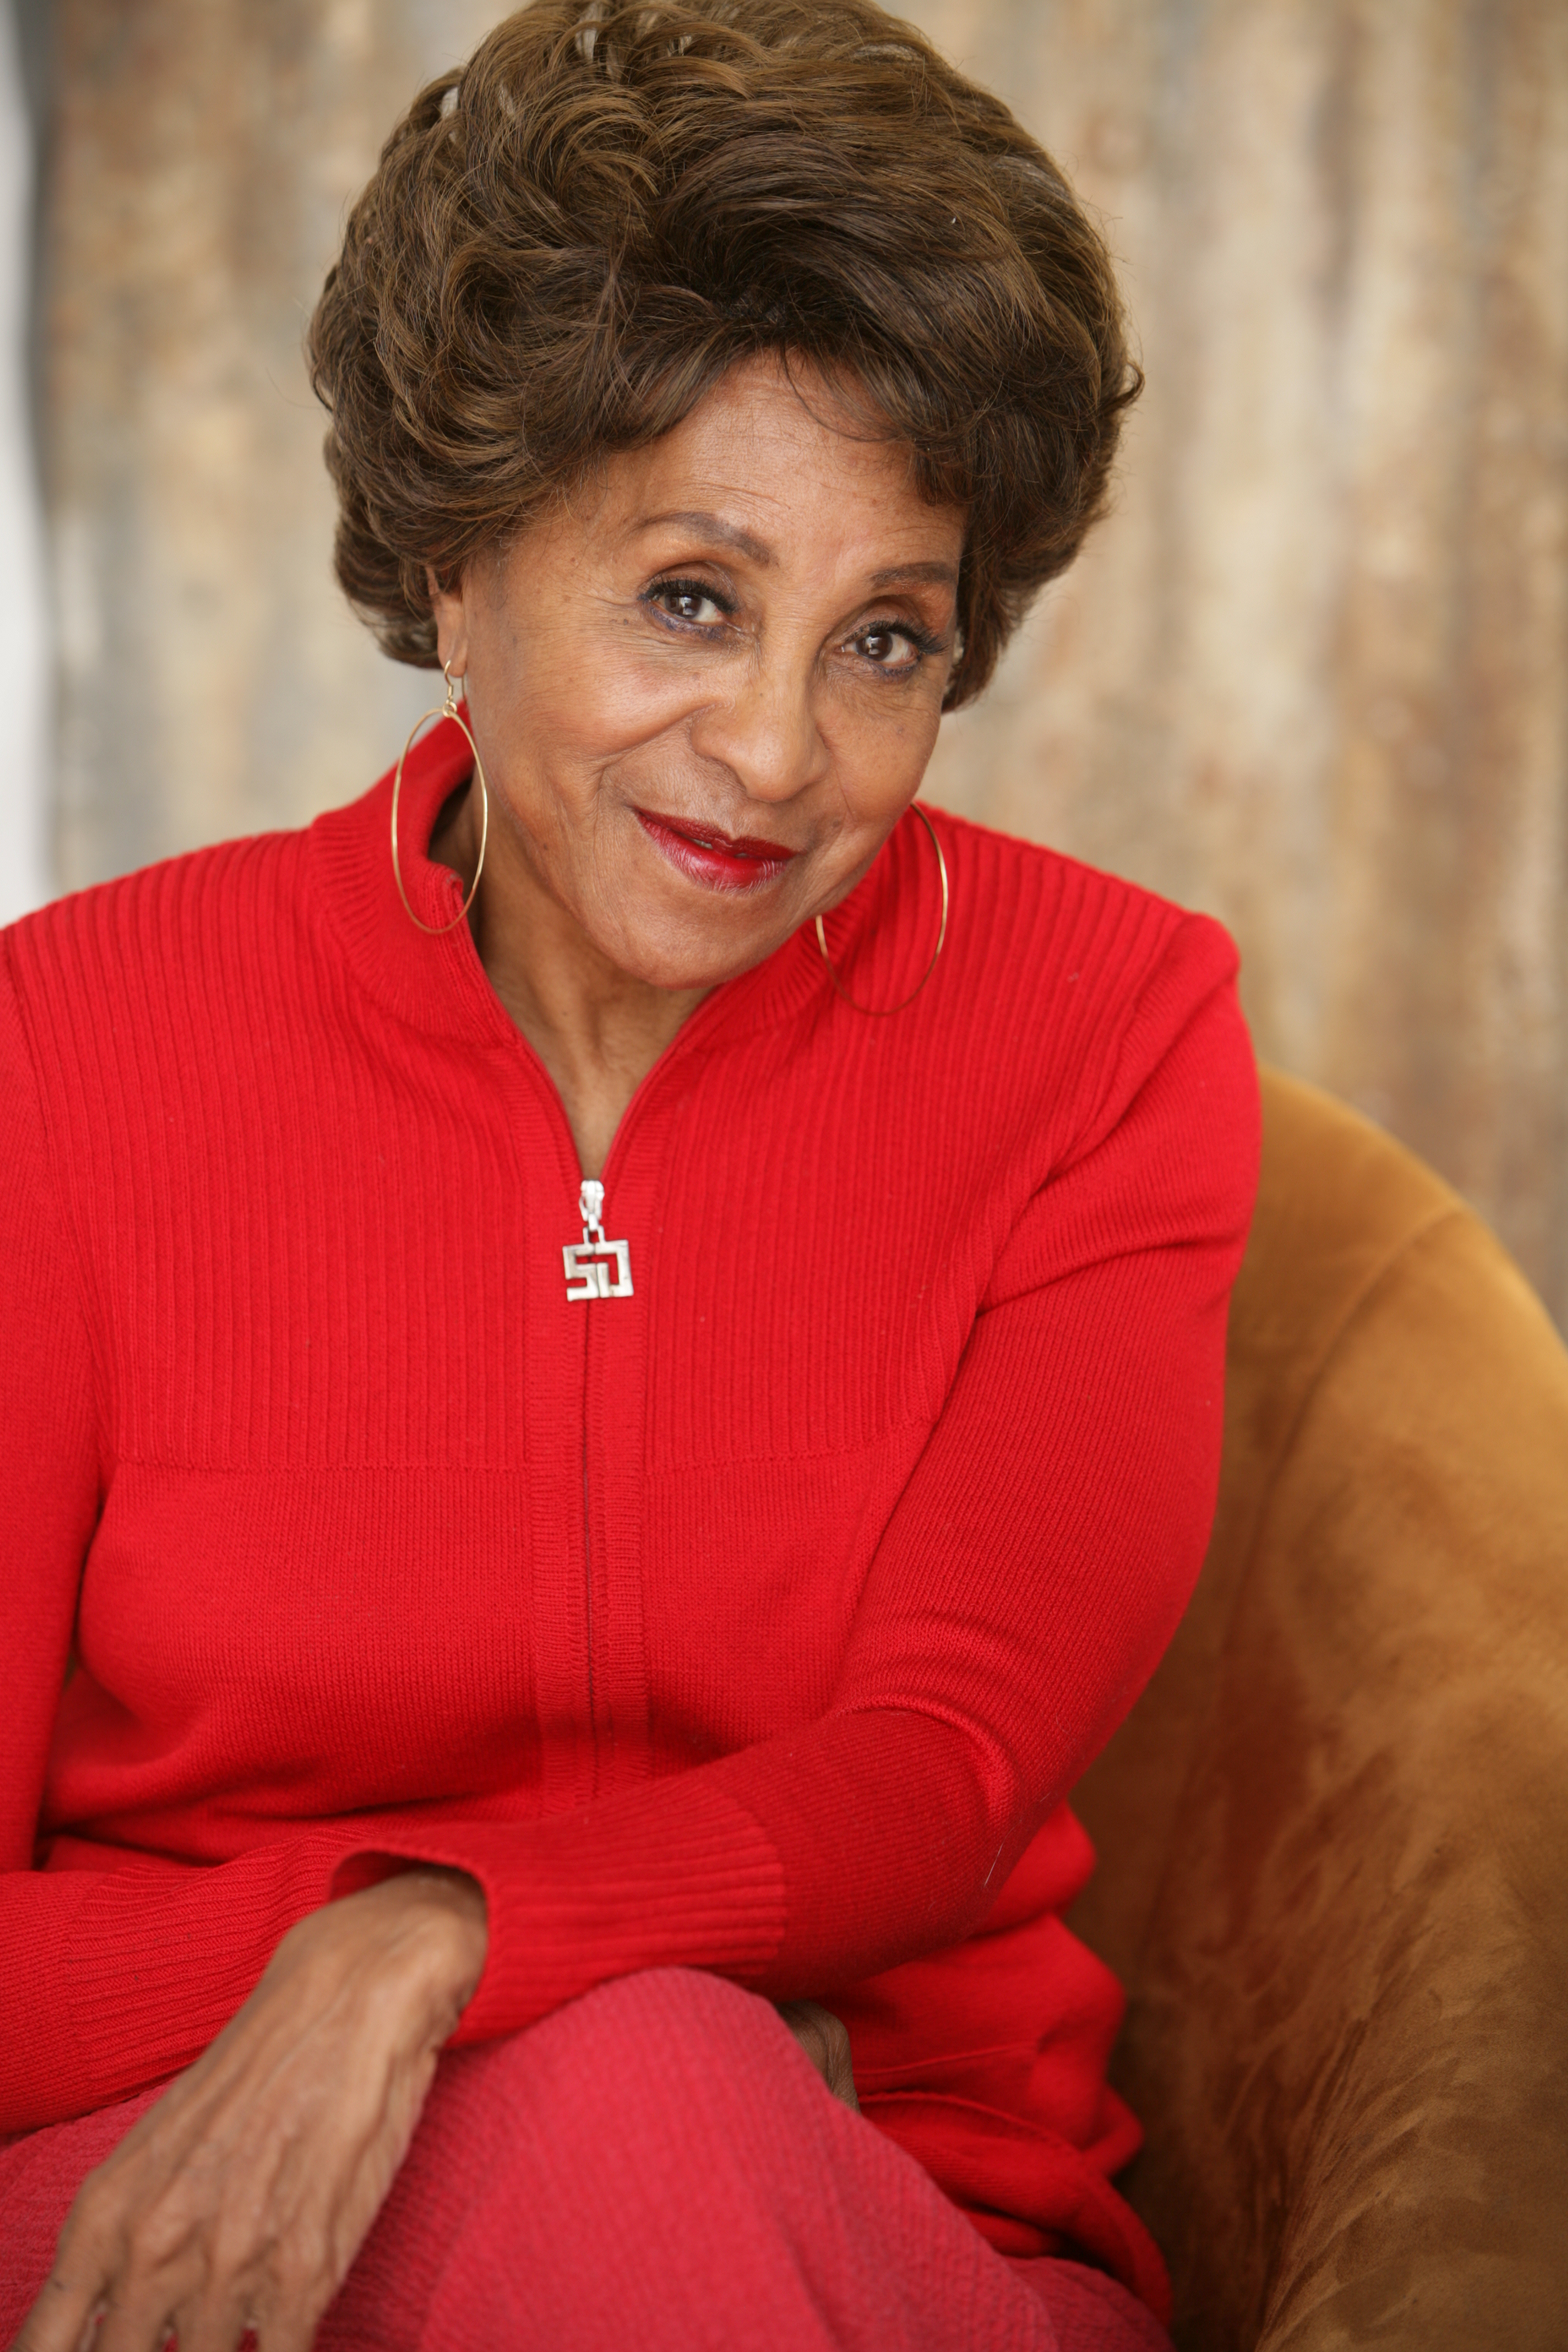 marla gibbs sonmarla gibbs age, marla gibbs son, marla gibbs husband, marla gibbs net worth, marla gibbs 227, marla gibbs imdb, marla gibbs sister, marla gibbs young, marla gibbs 2016, marla gibbs death, marla gibbs daughter, marla gibbs tv shows, marla gibbs now, marla gibbs dead, marla gibbs movies, marla gibbs shows, marla gibbs restaurant, marla gibbs died, marla gibbs quotes, marla gibbs images